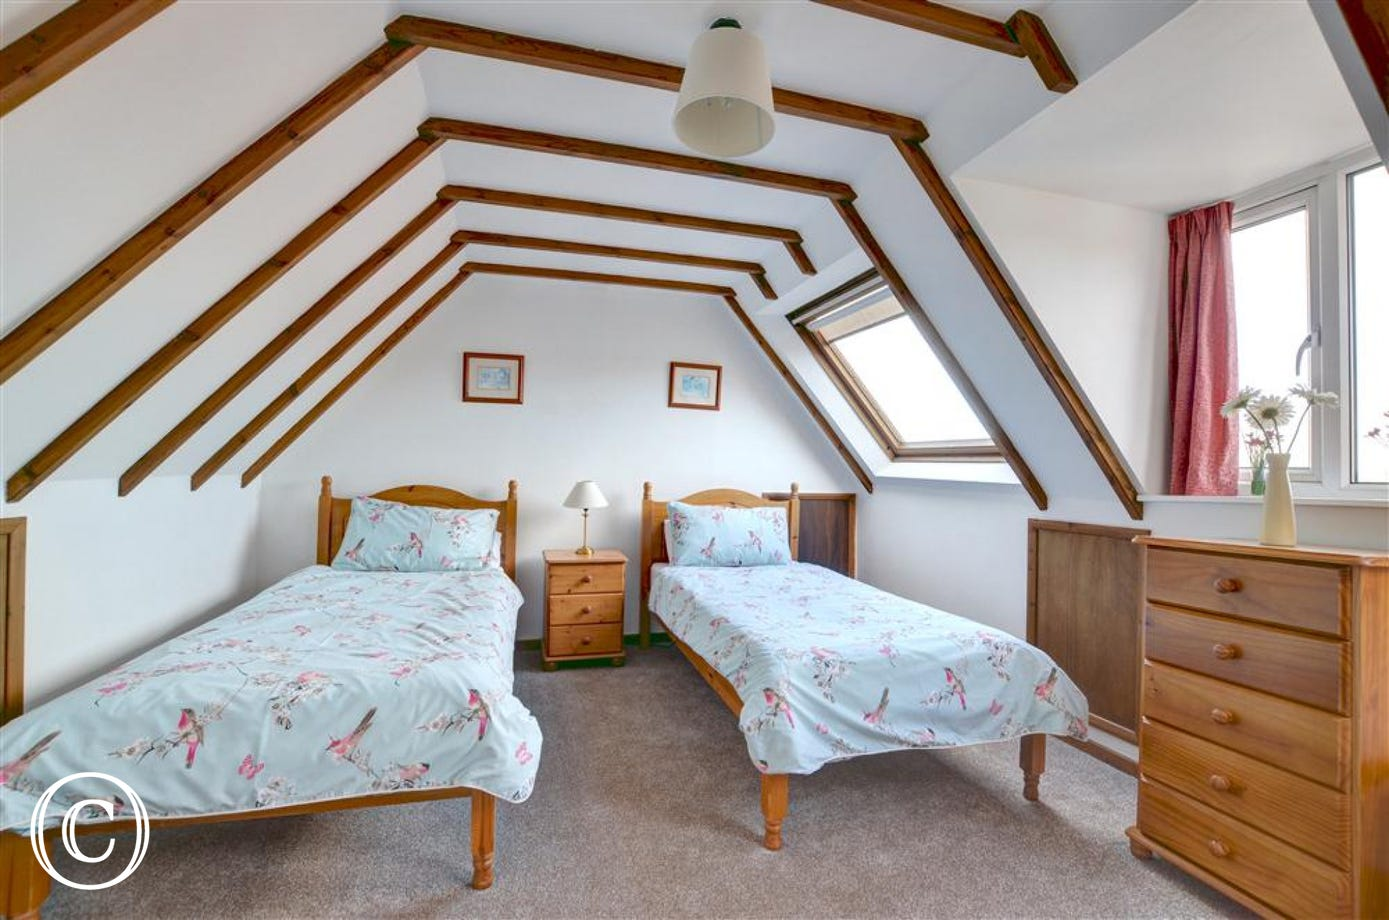 Second bedroom has two single beds and an open staircase.